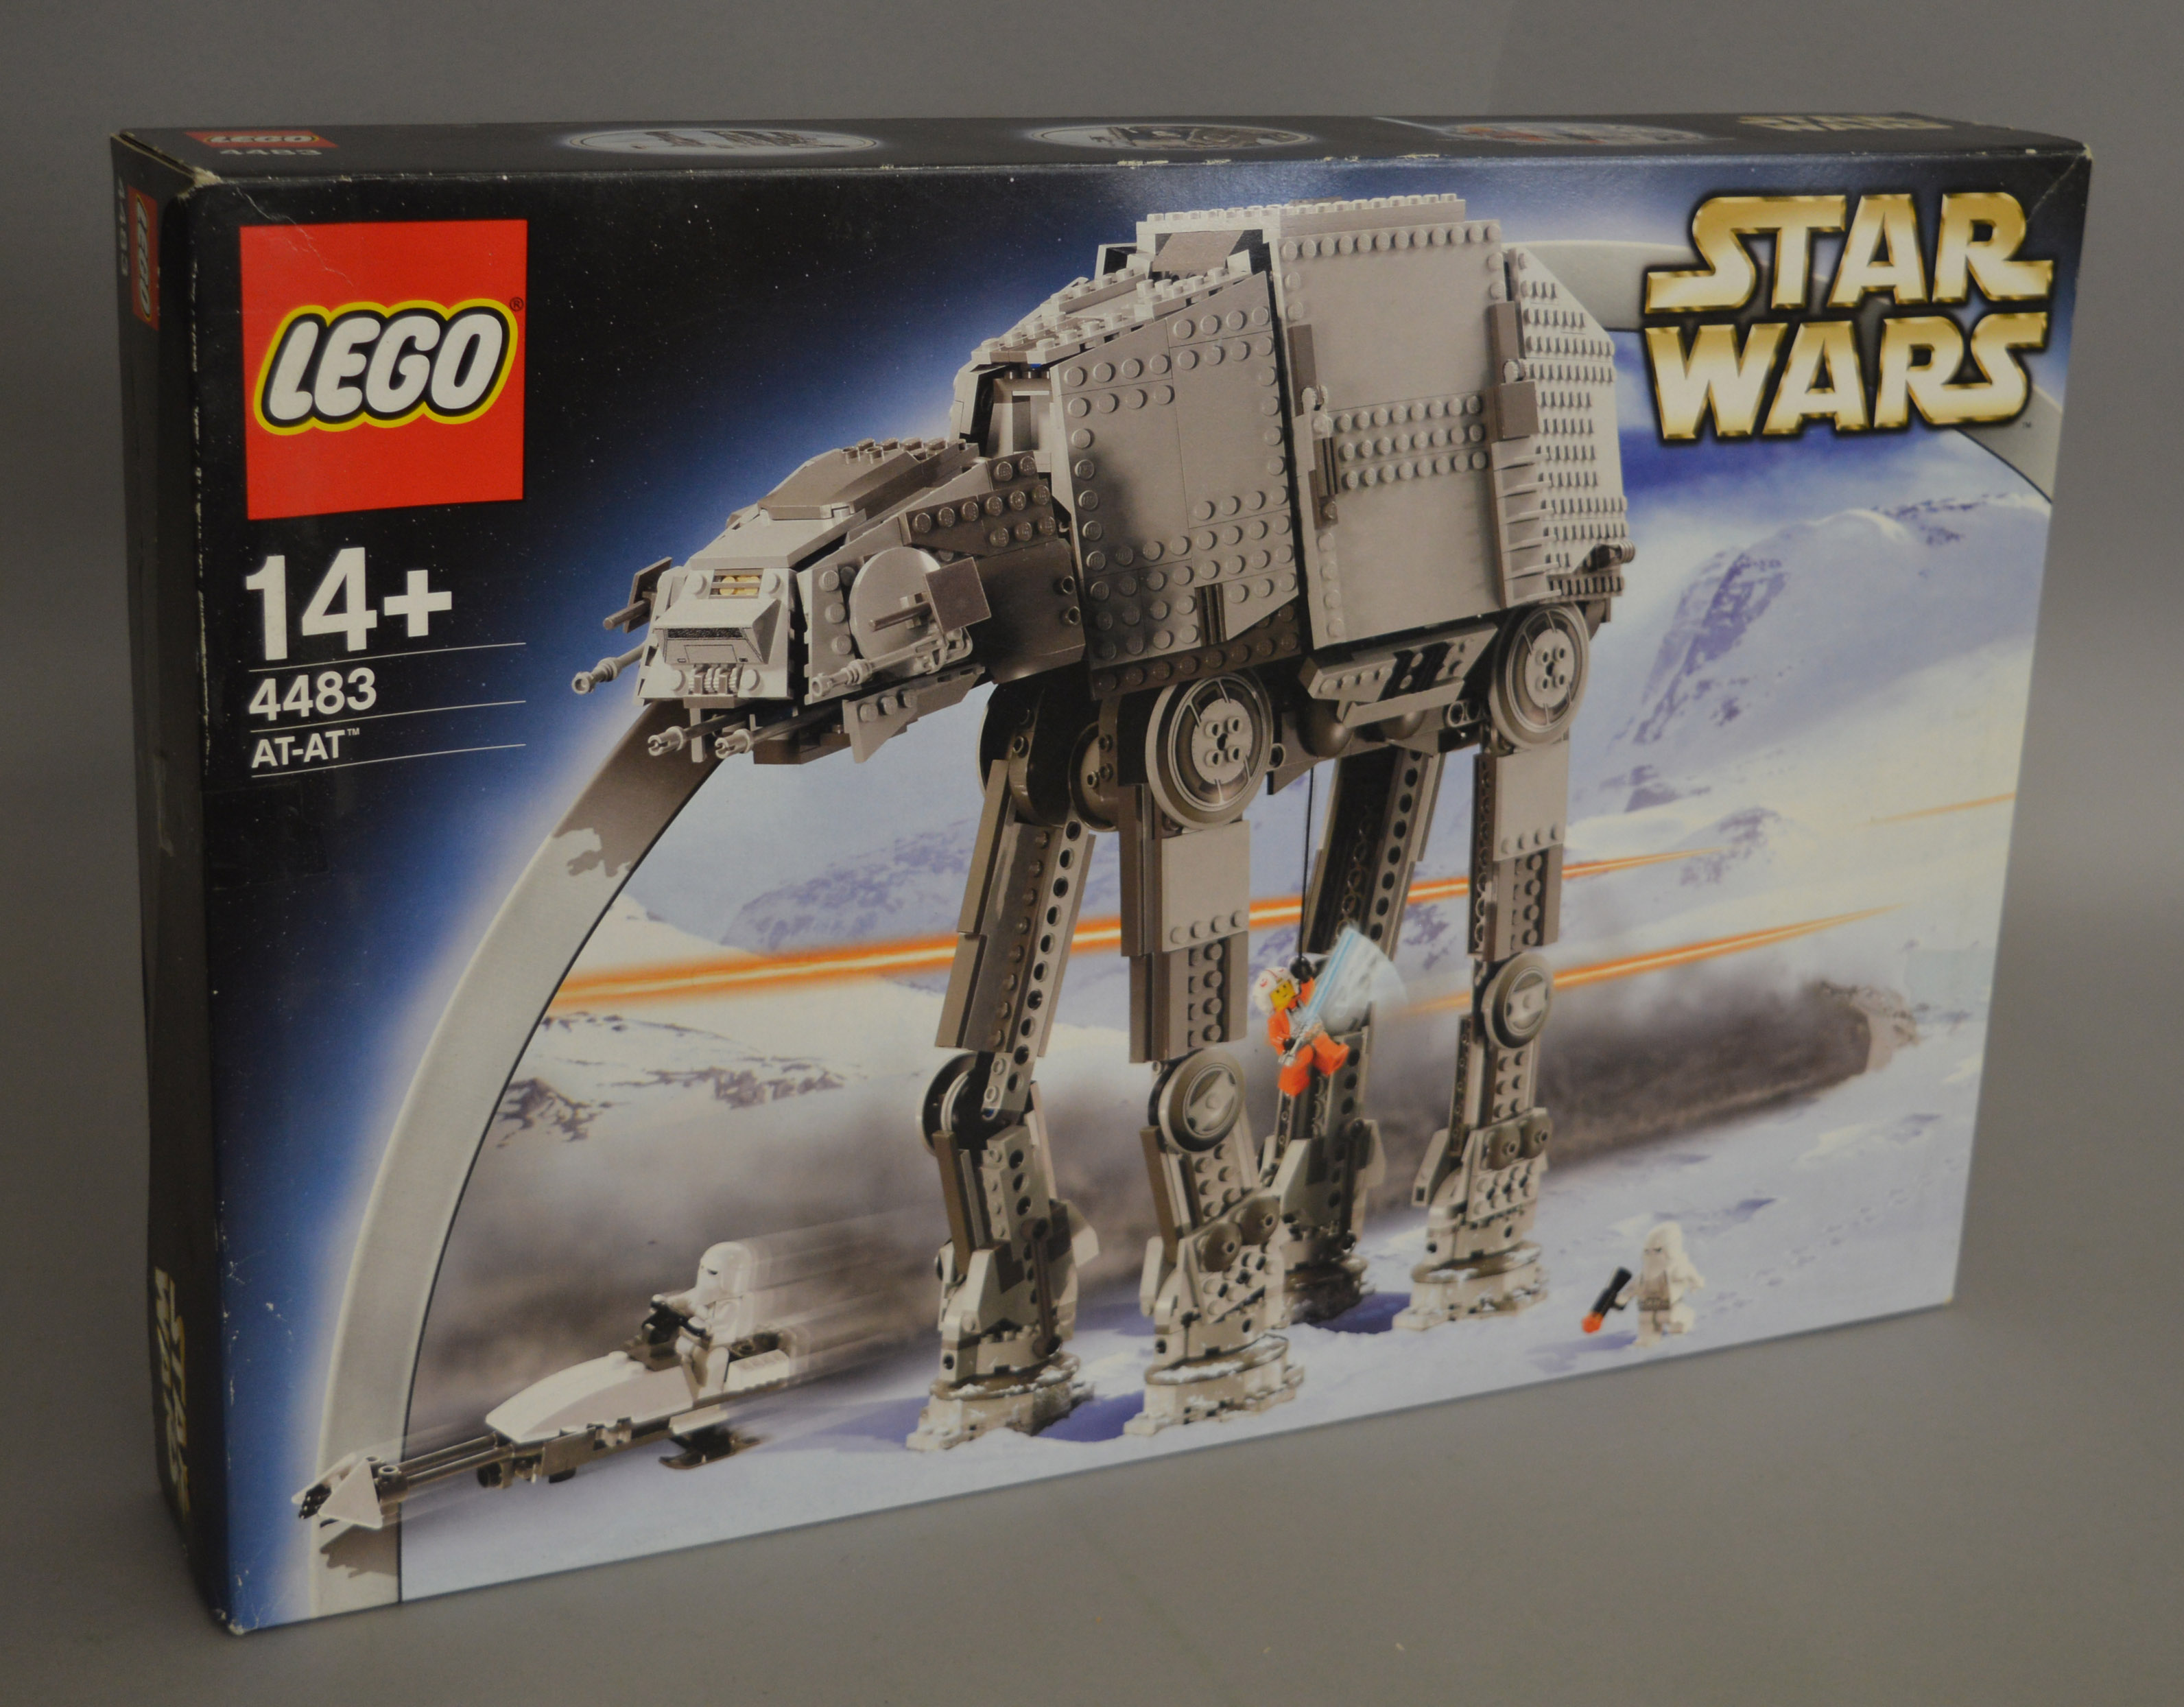 Lot 2 - Lego Star Wars 4483 'AT-AT', in generally G/G+ box with some undulation and creasing.